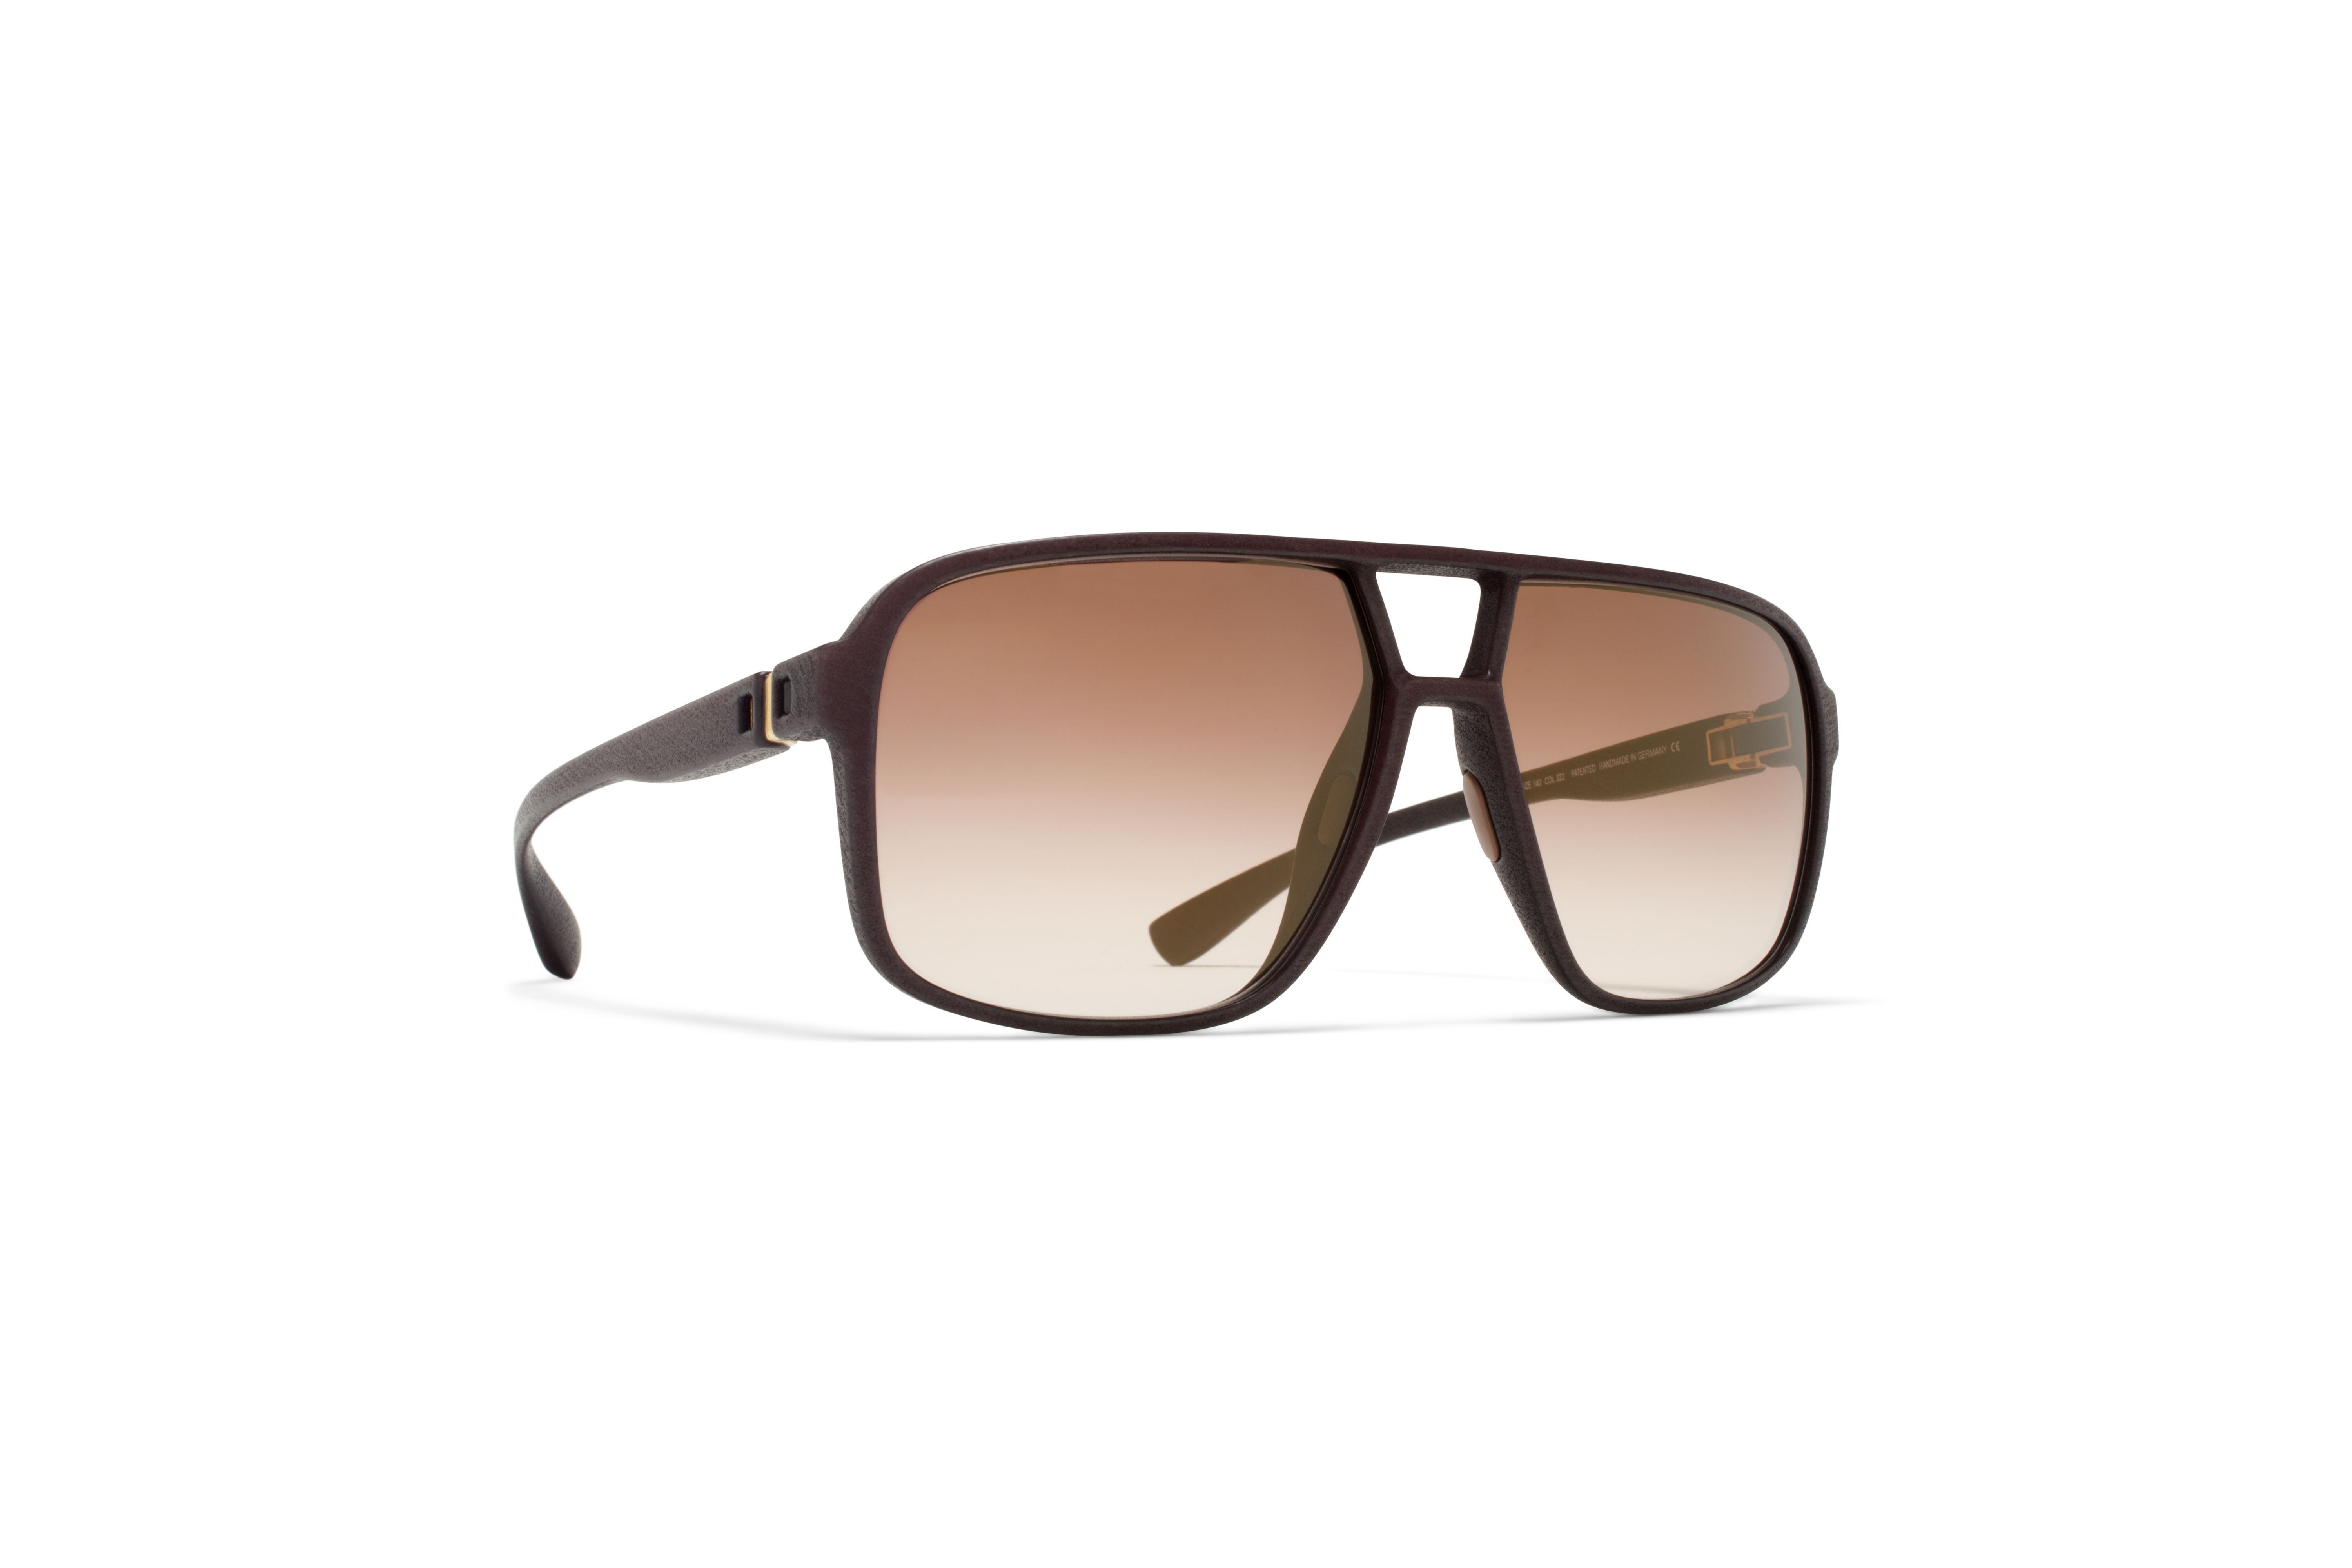 MYKITA Mylon Sun Air Md22 Ebony Brown Cocoa Gradie590b3faaa725f